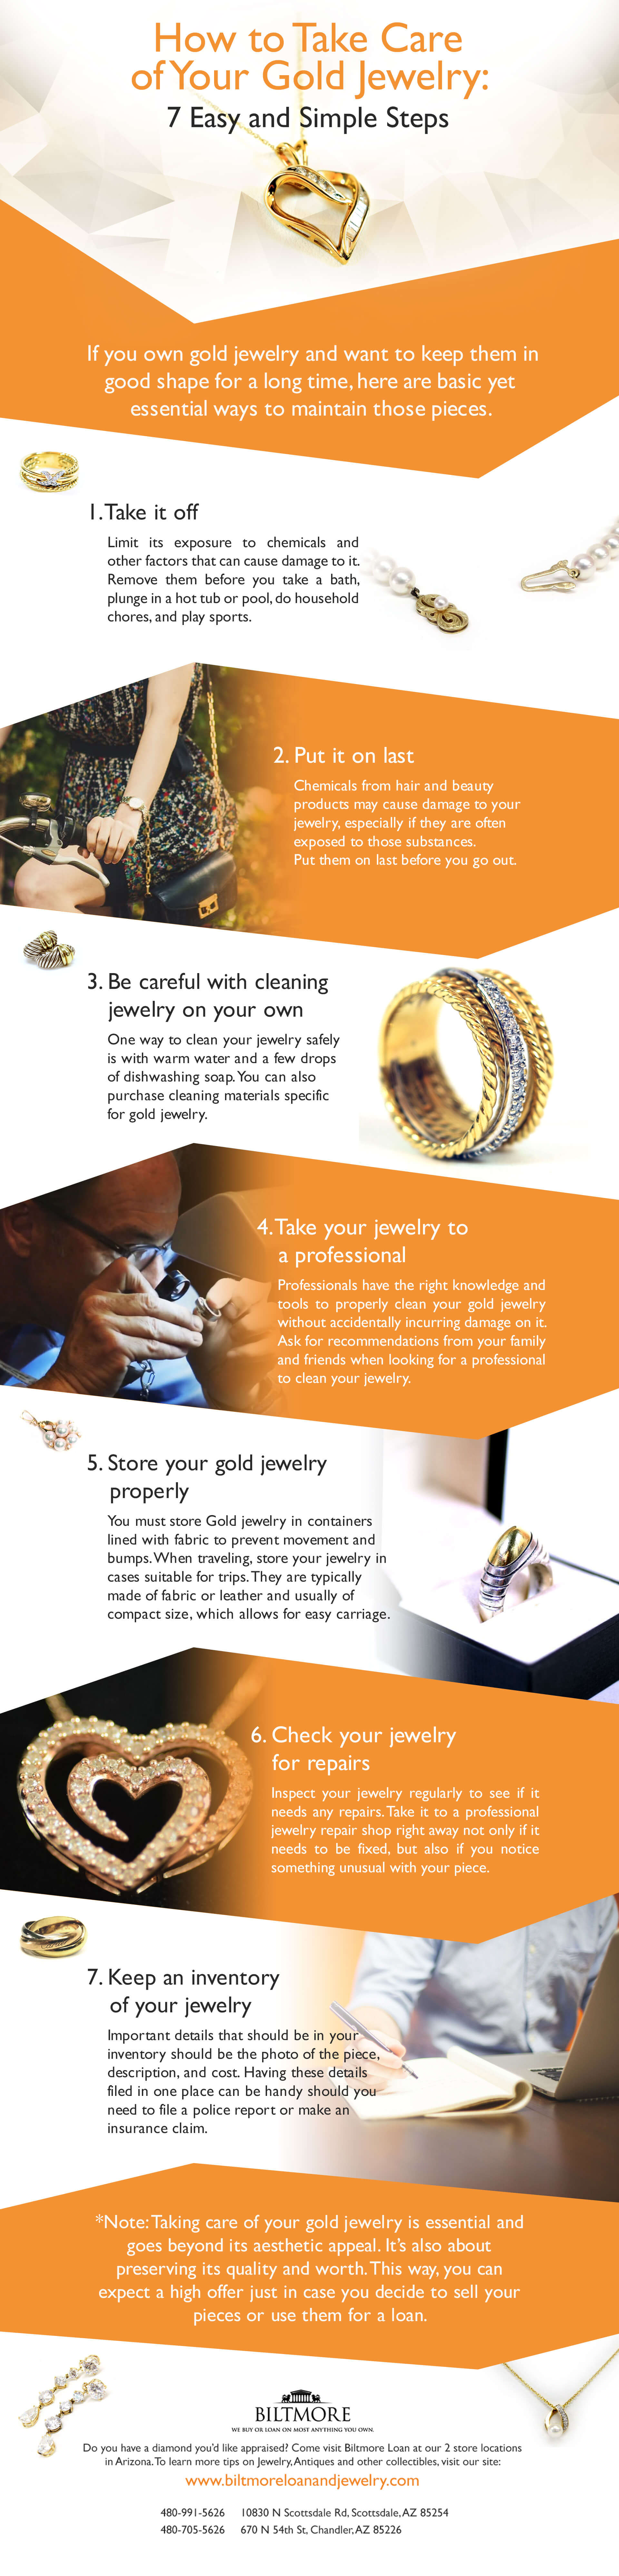 How to Take Care of Your Gold Jewelry